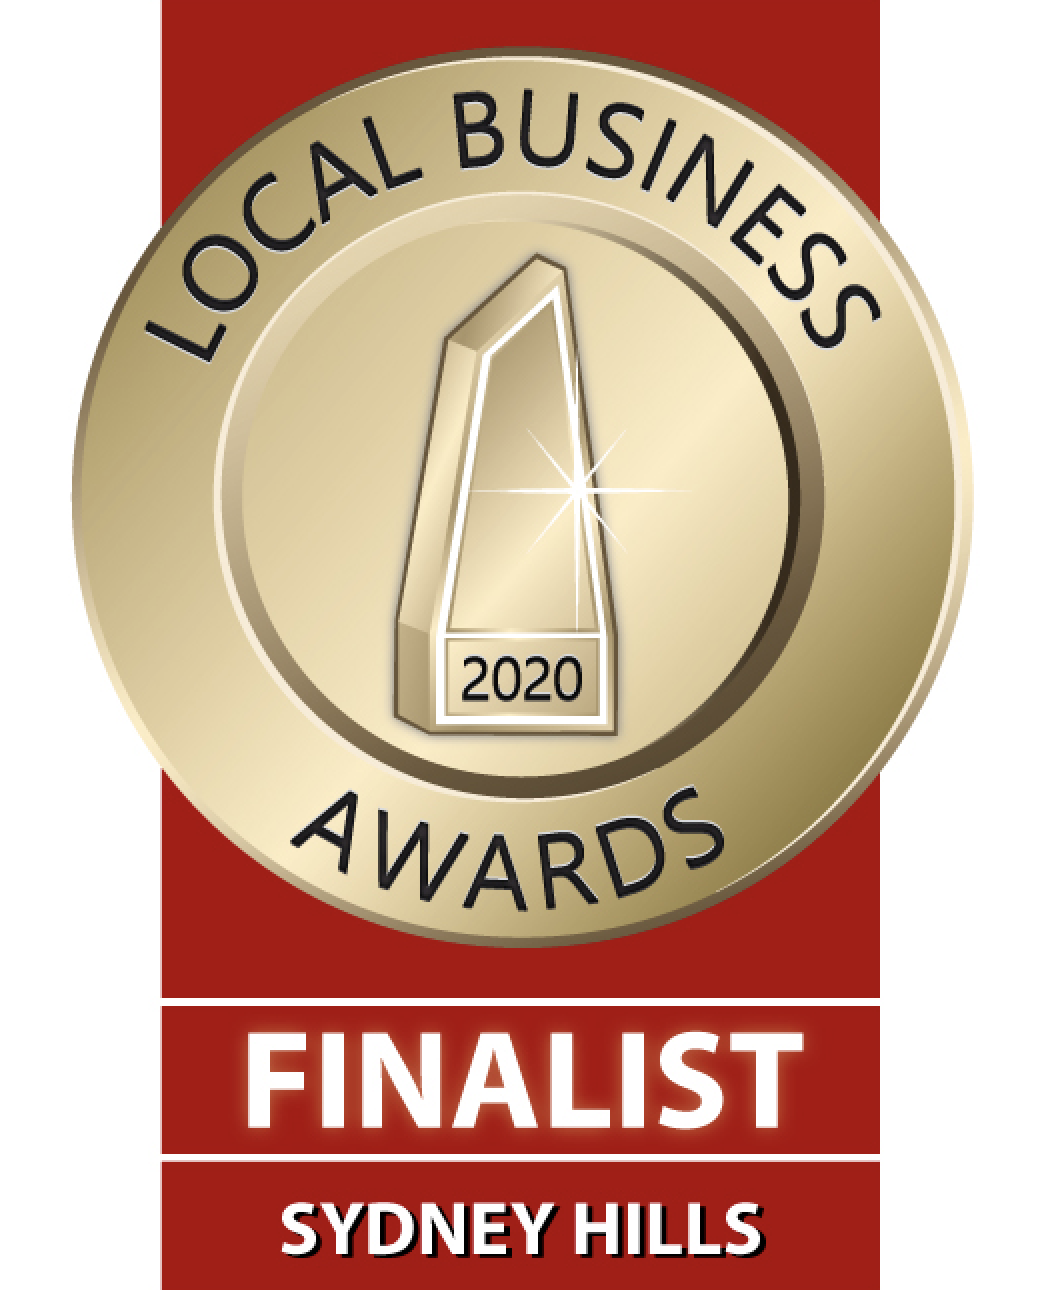 HSM - Business Awards Finalist, 2020